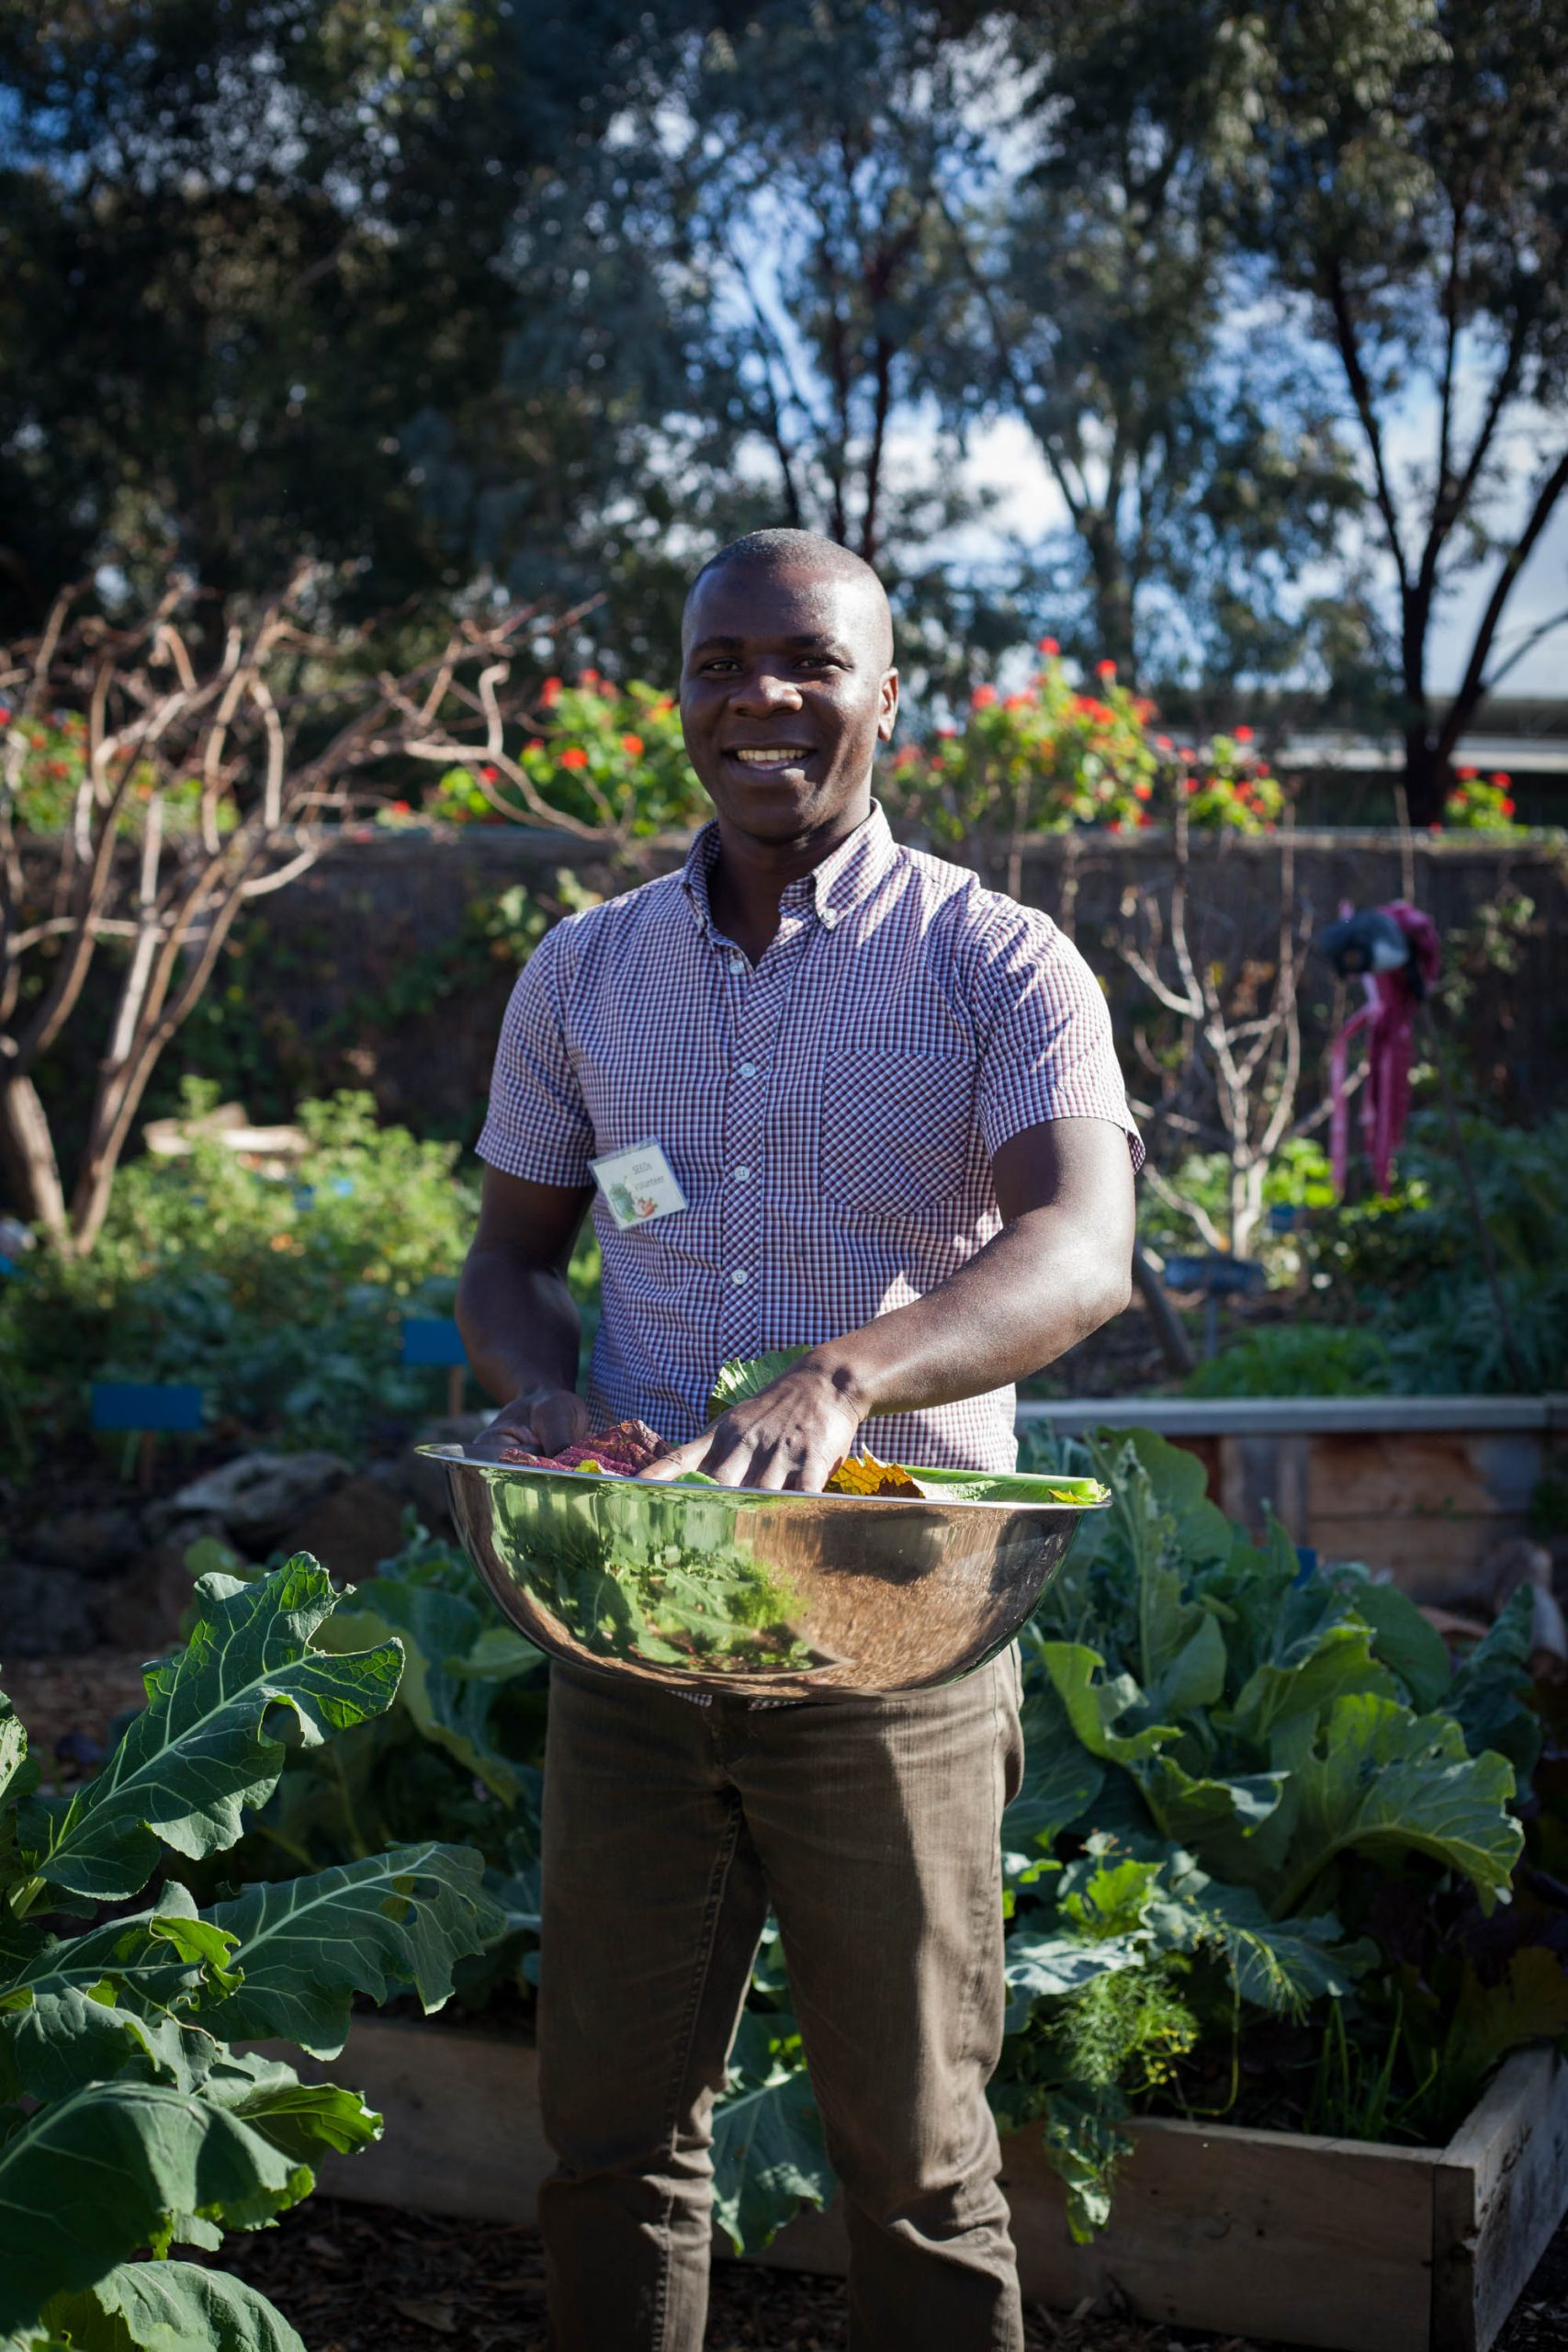 Man collecting vegetables in a metal bowl